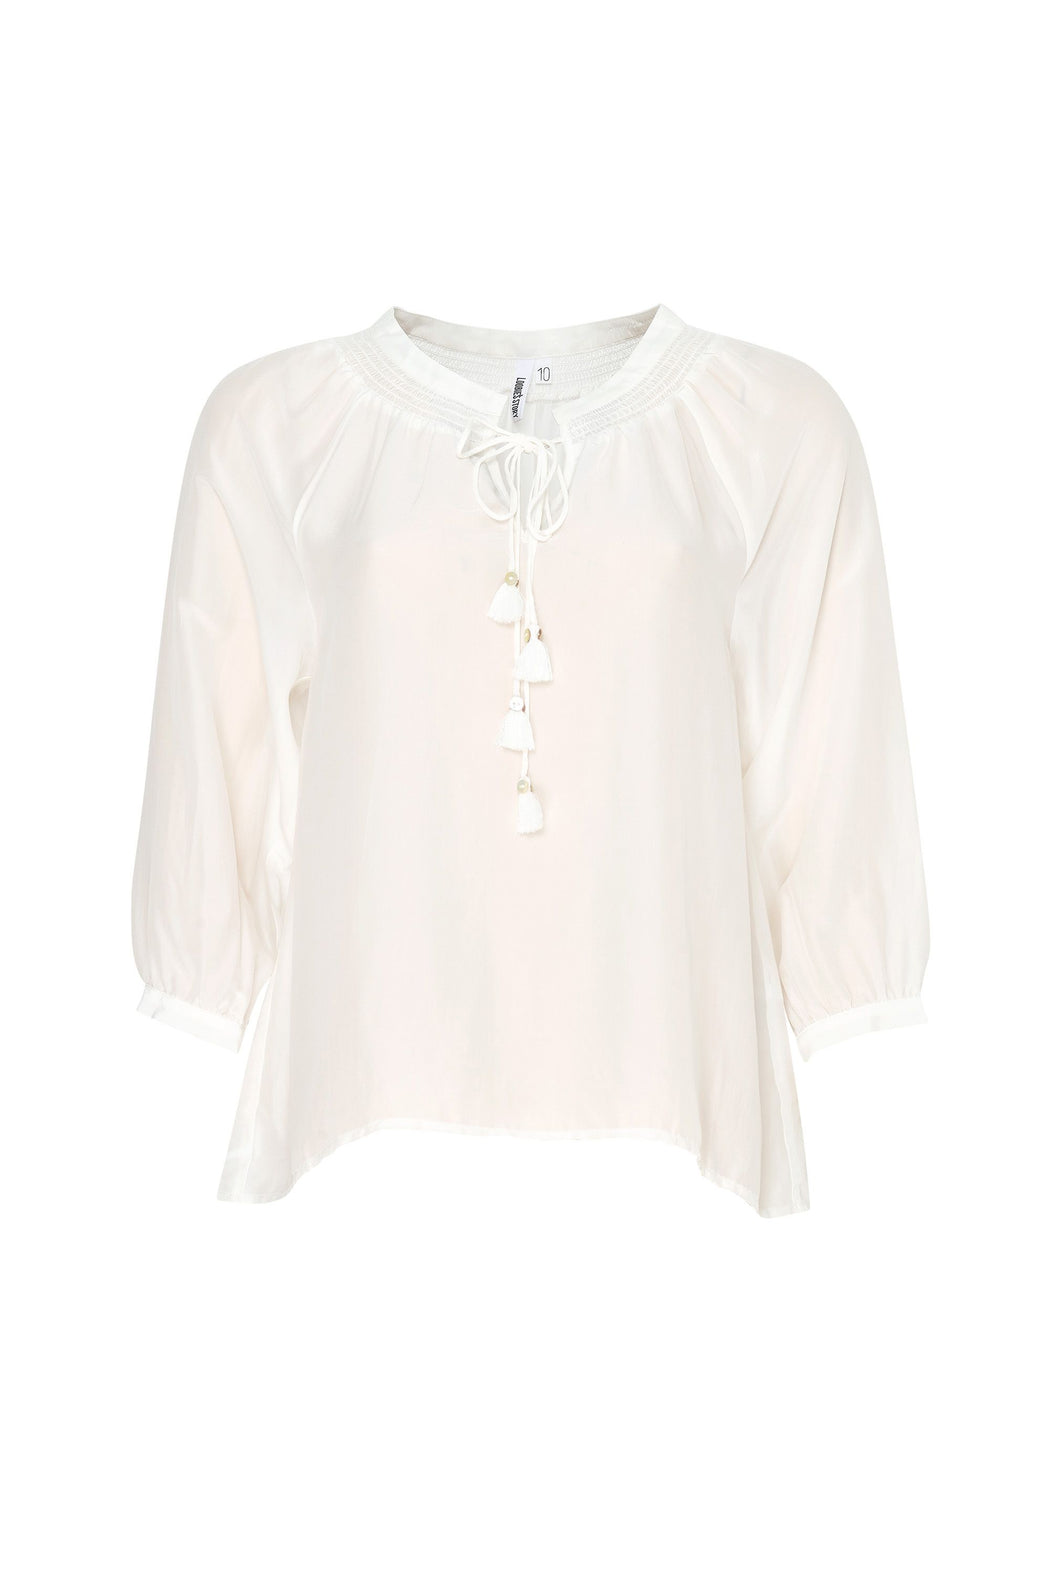 Loobies Story Lani Blouse Silk - White | Shop at Wallace and Gibbs NZ